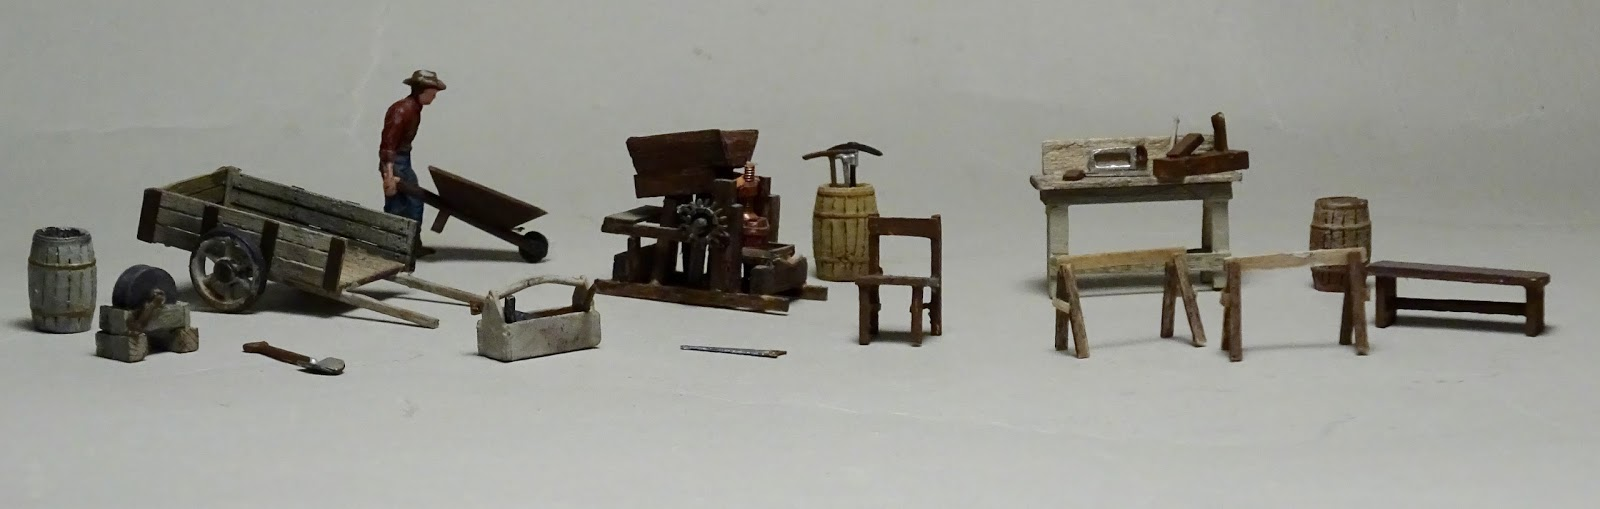 medium resolution of  scratch built as are the chair bench work bench saw horses and the strange machine in the center that machine is being repaired by the carpenter